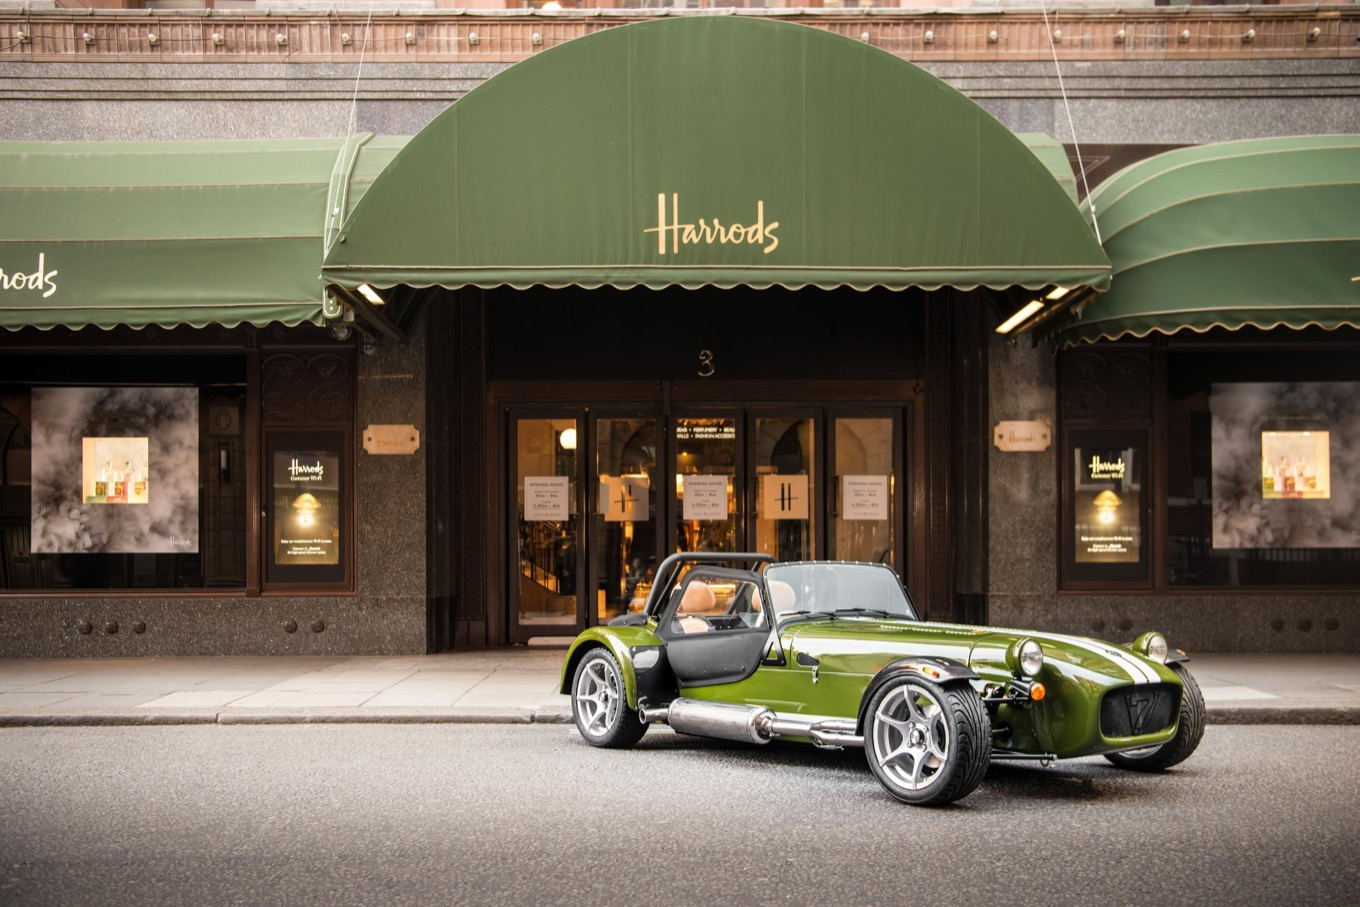 Caterham Teams Up with Harrods for Personalization Program